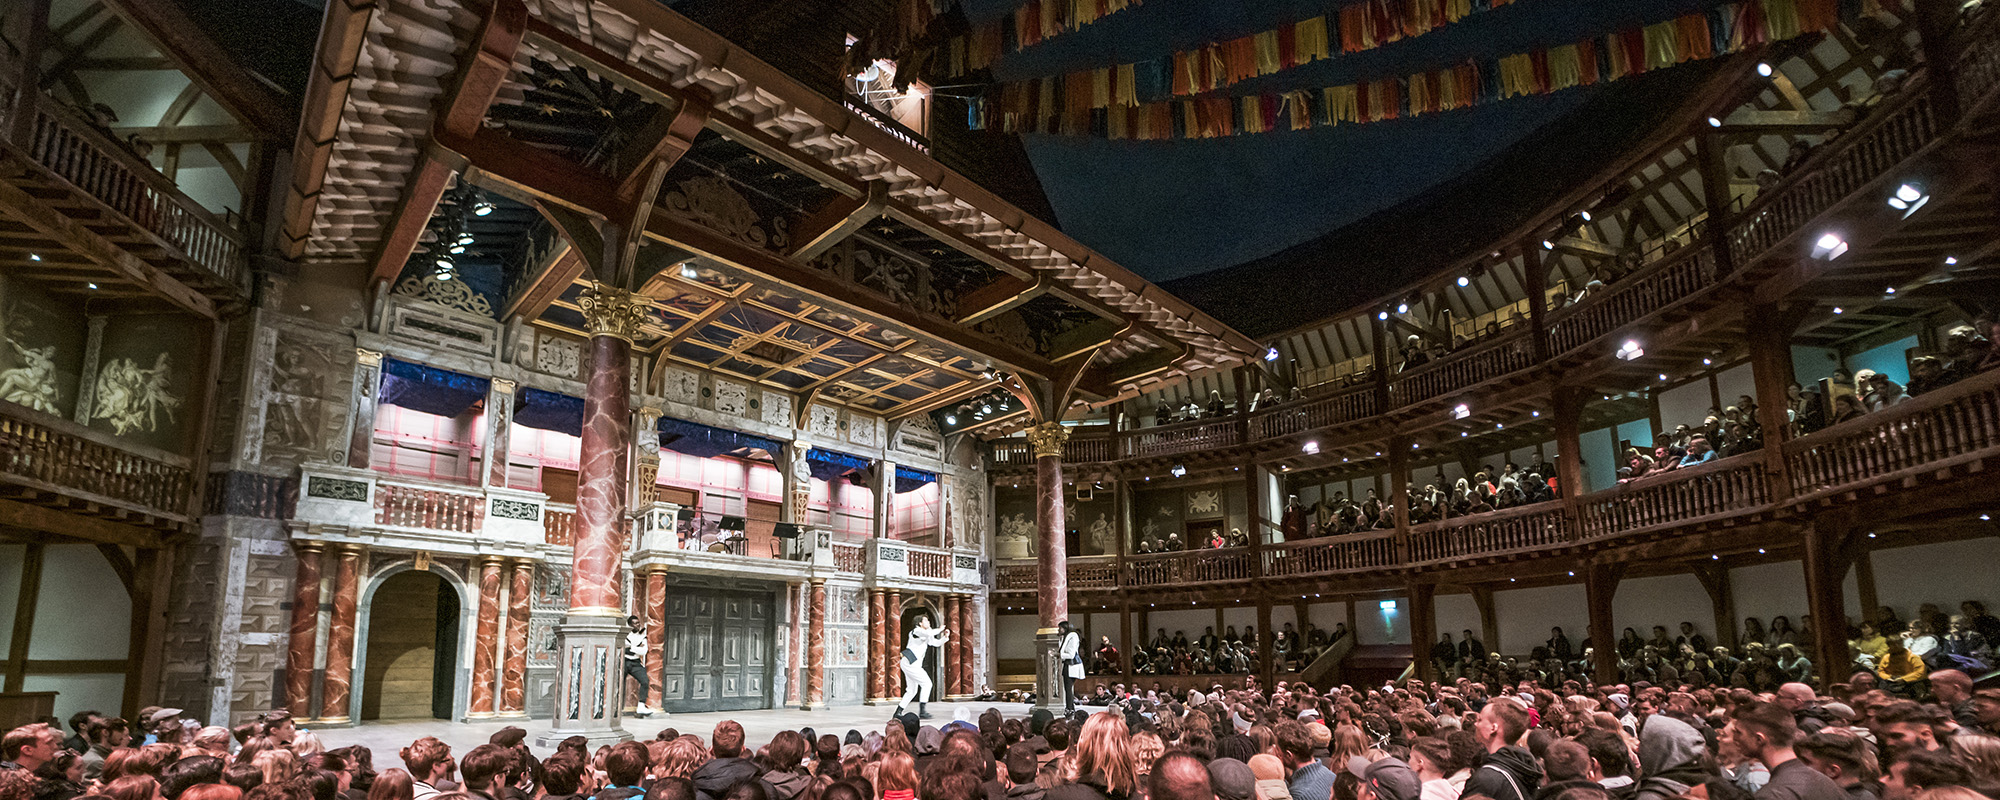 A full audiences watches an actor on stage at nighttime in a circular wooden theatre.